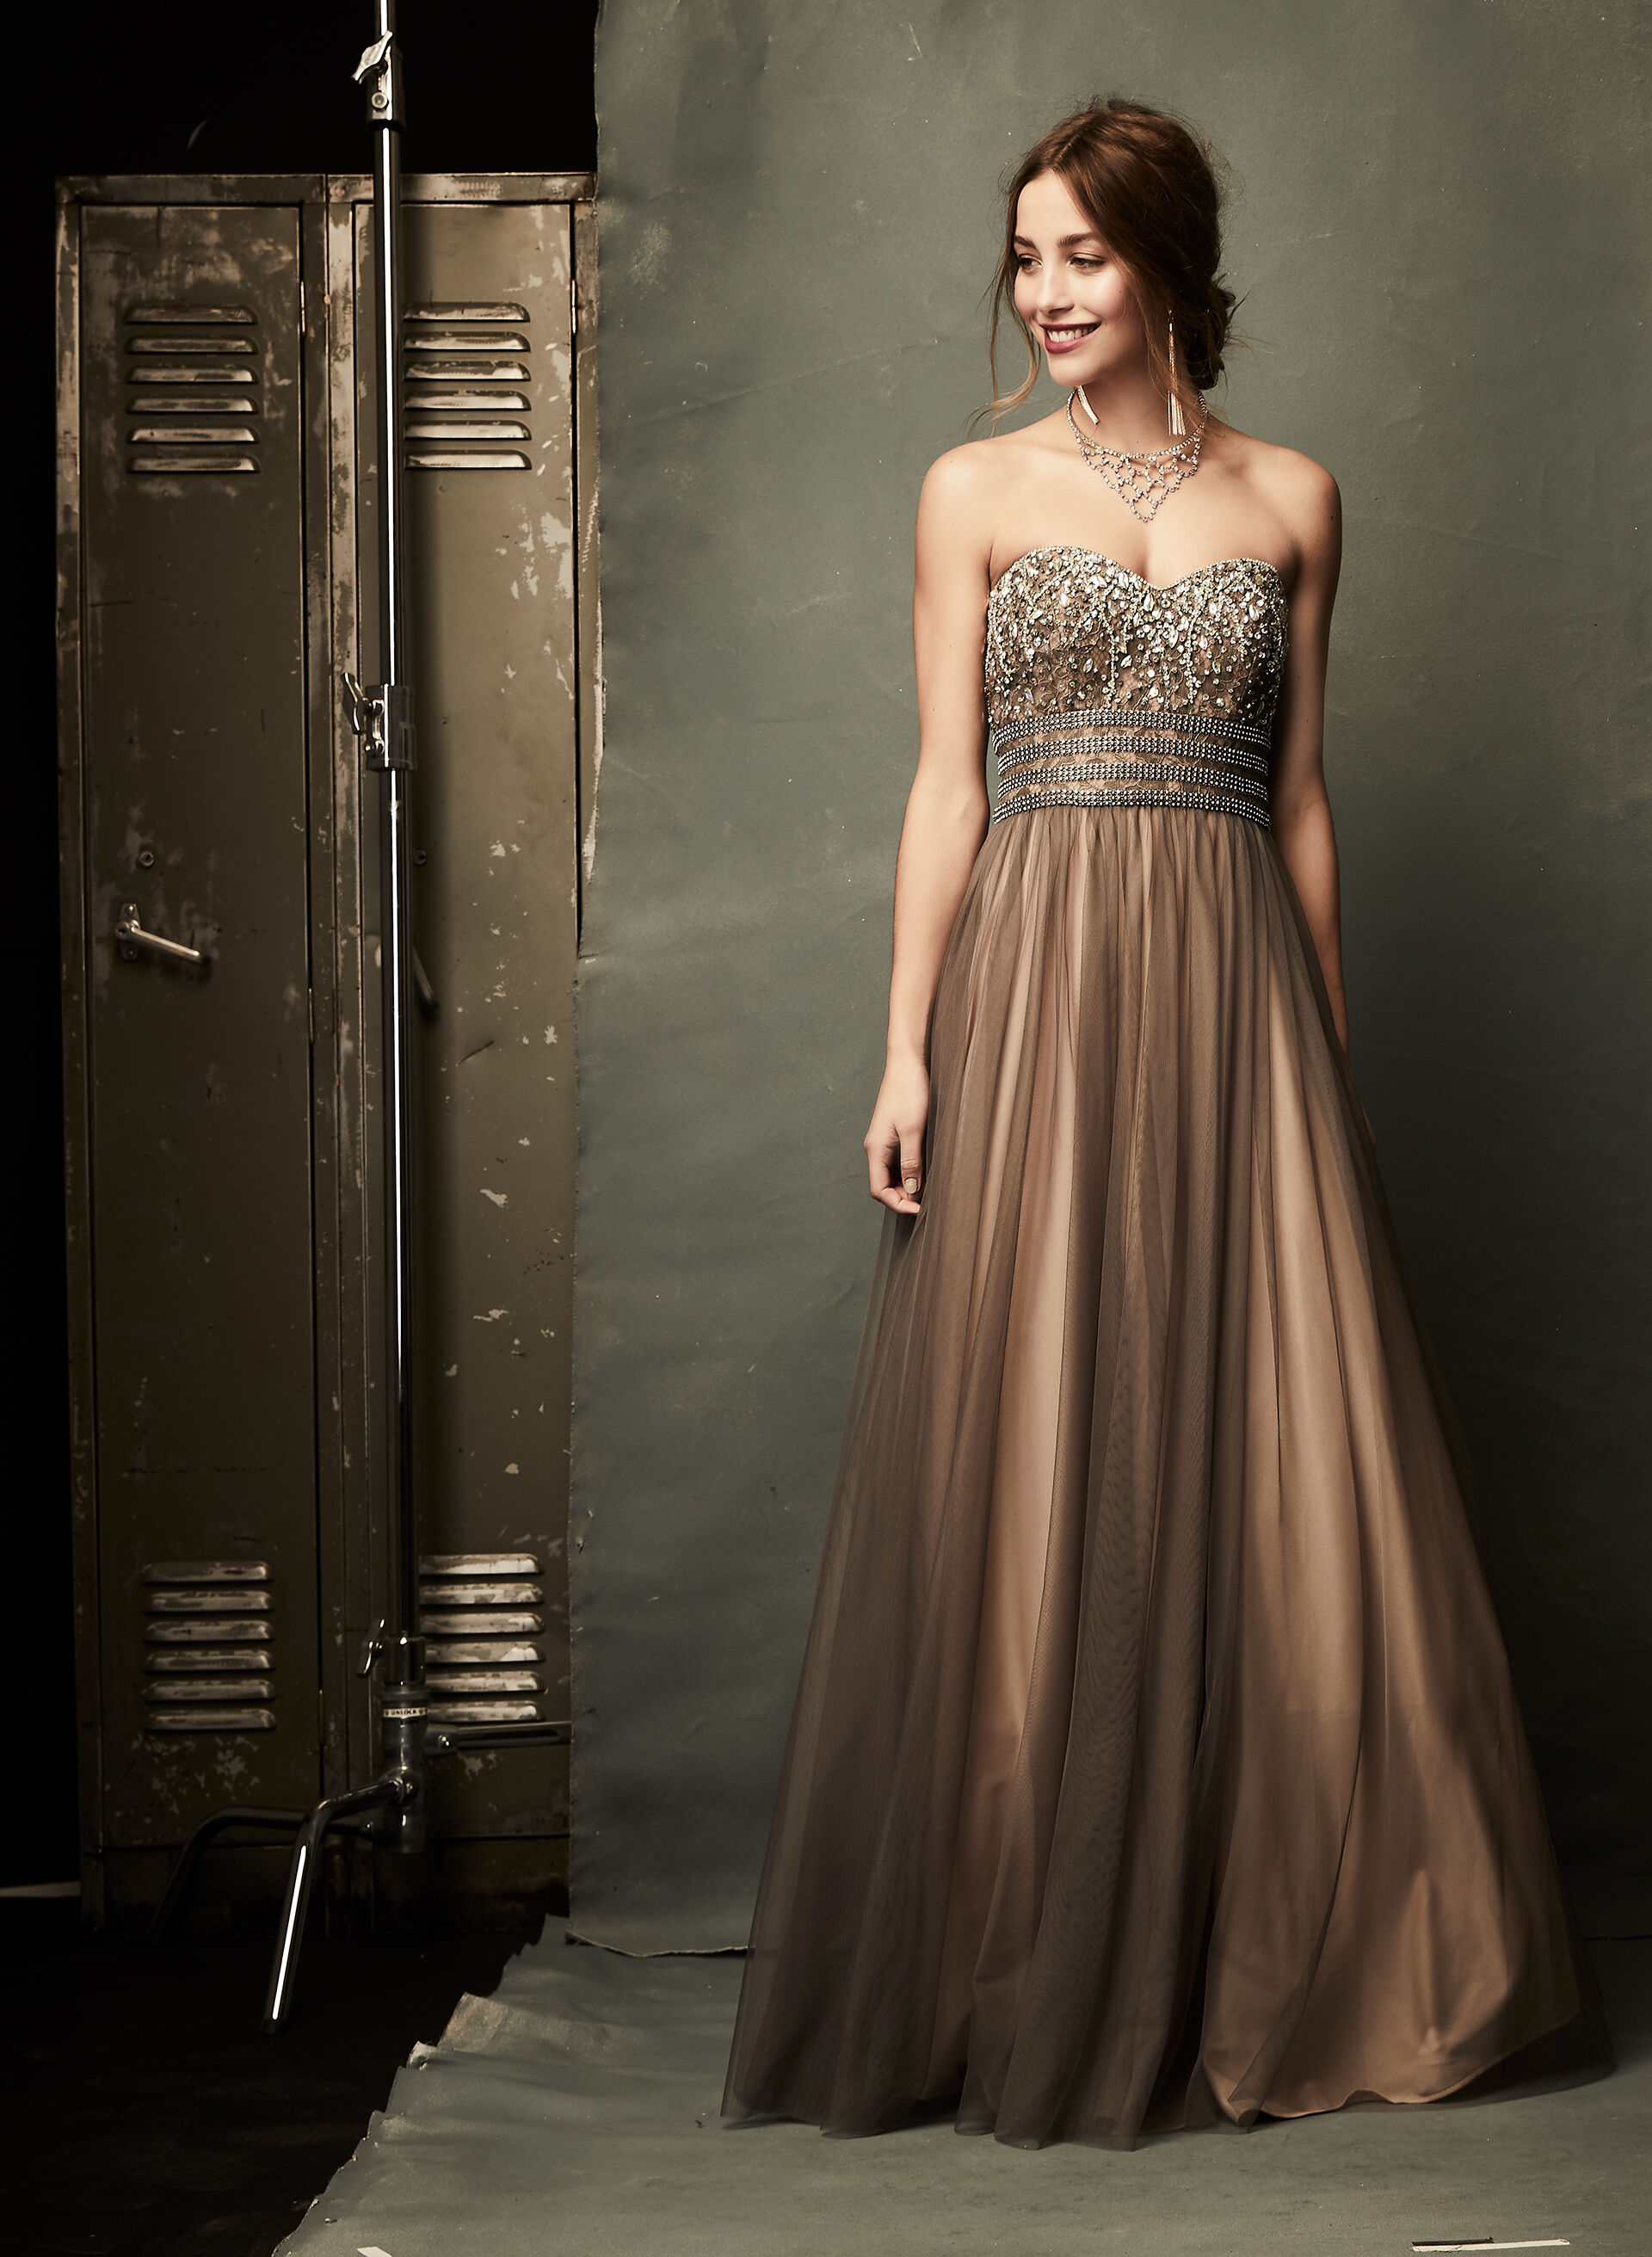 Strapless Beaded Ball Gown   Laura